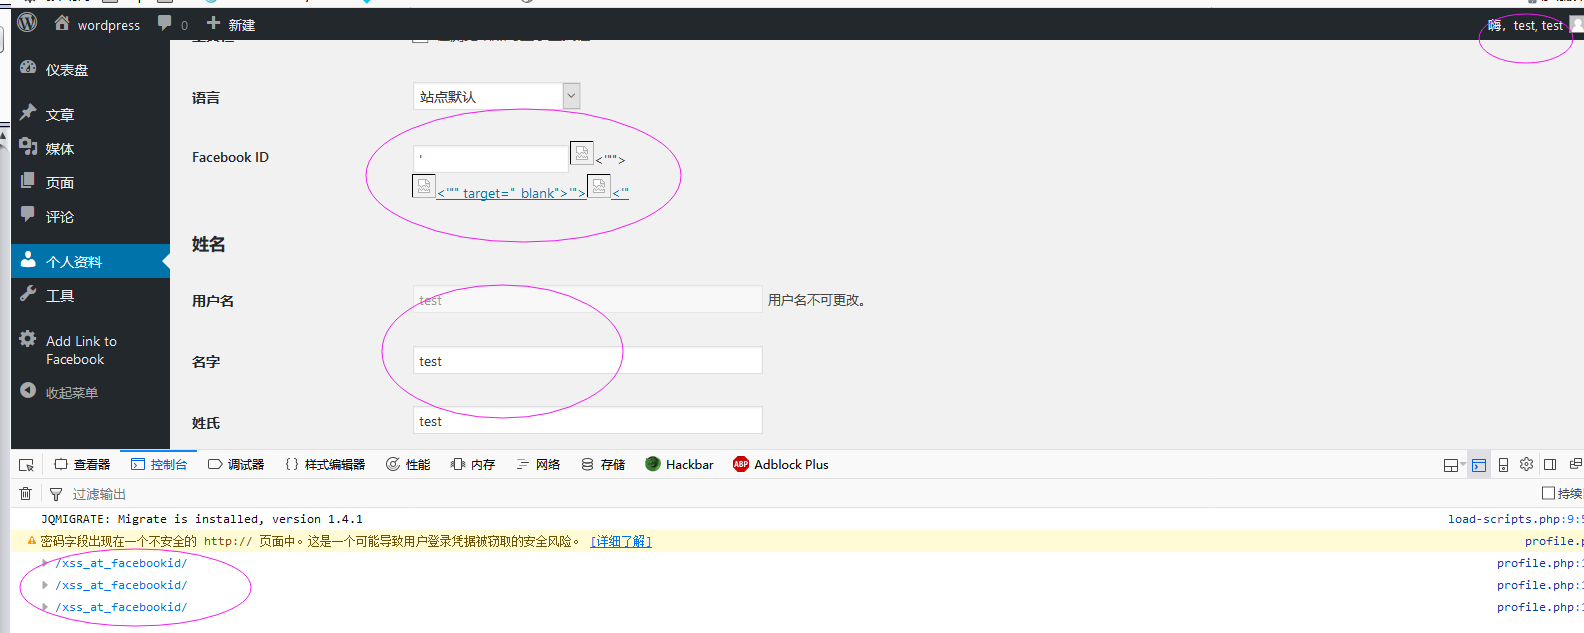 Vulnerabilities-Report/Add-Link-to-Facebook md at master